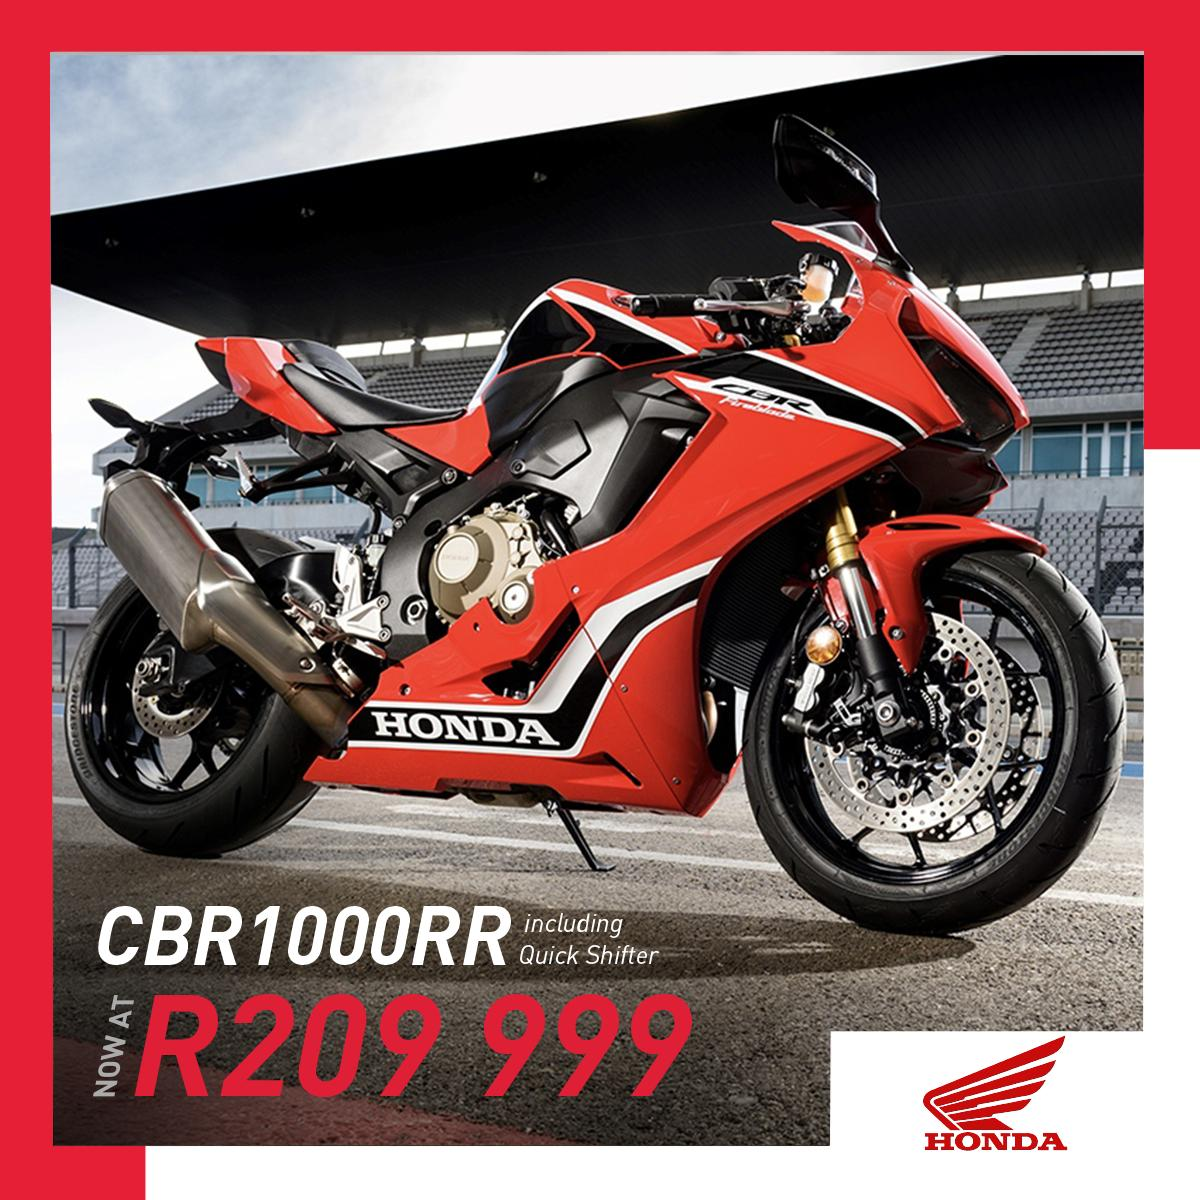 Power at your fingertips while being seated in the lap of  riding comfort, what's not to love about the CBR1000RR experience. Find a dealer and book a test ride today:  http:// ow.ly/HBil50usCZB    <br>http://pic.twitter.com/V4LKaSdNX0